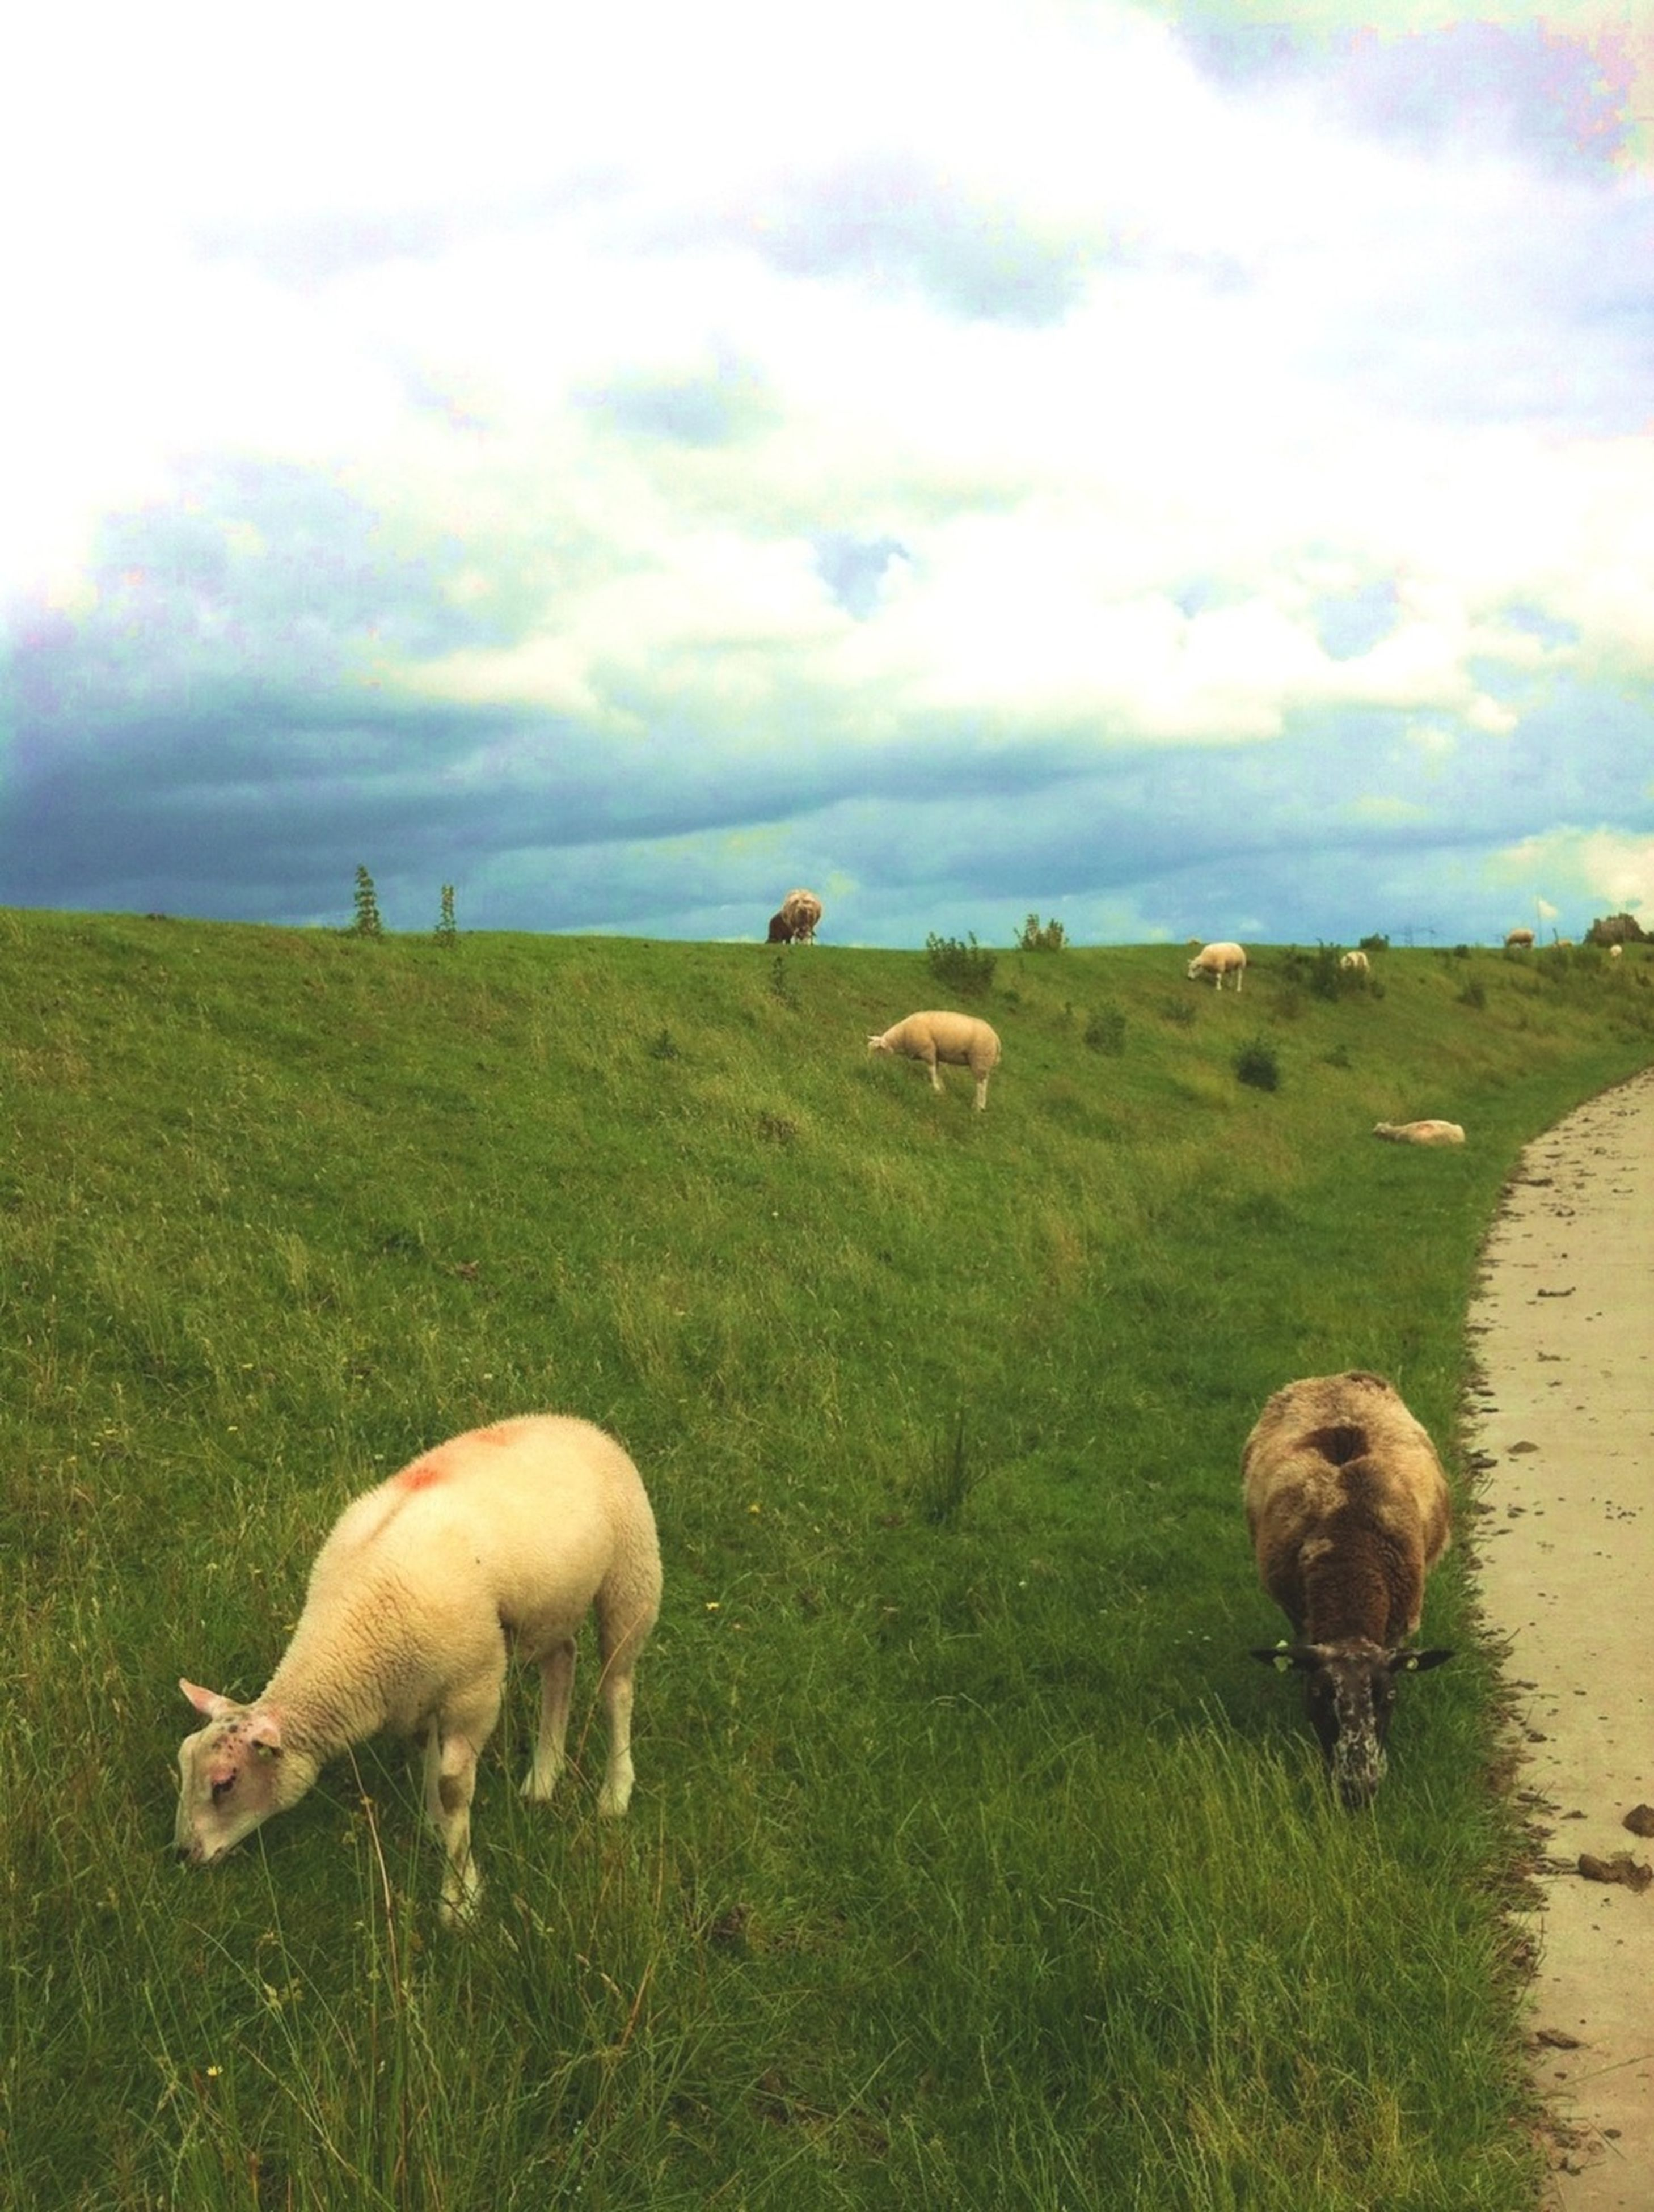 animal themes, grass, mammal, domestic animals, field, sky, livestock, sheep, grassy, animal family, cloud - sky, medium group of animals, togetherness, young animal, three animals, nature, landscape, grazing, cloudy